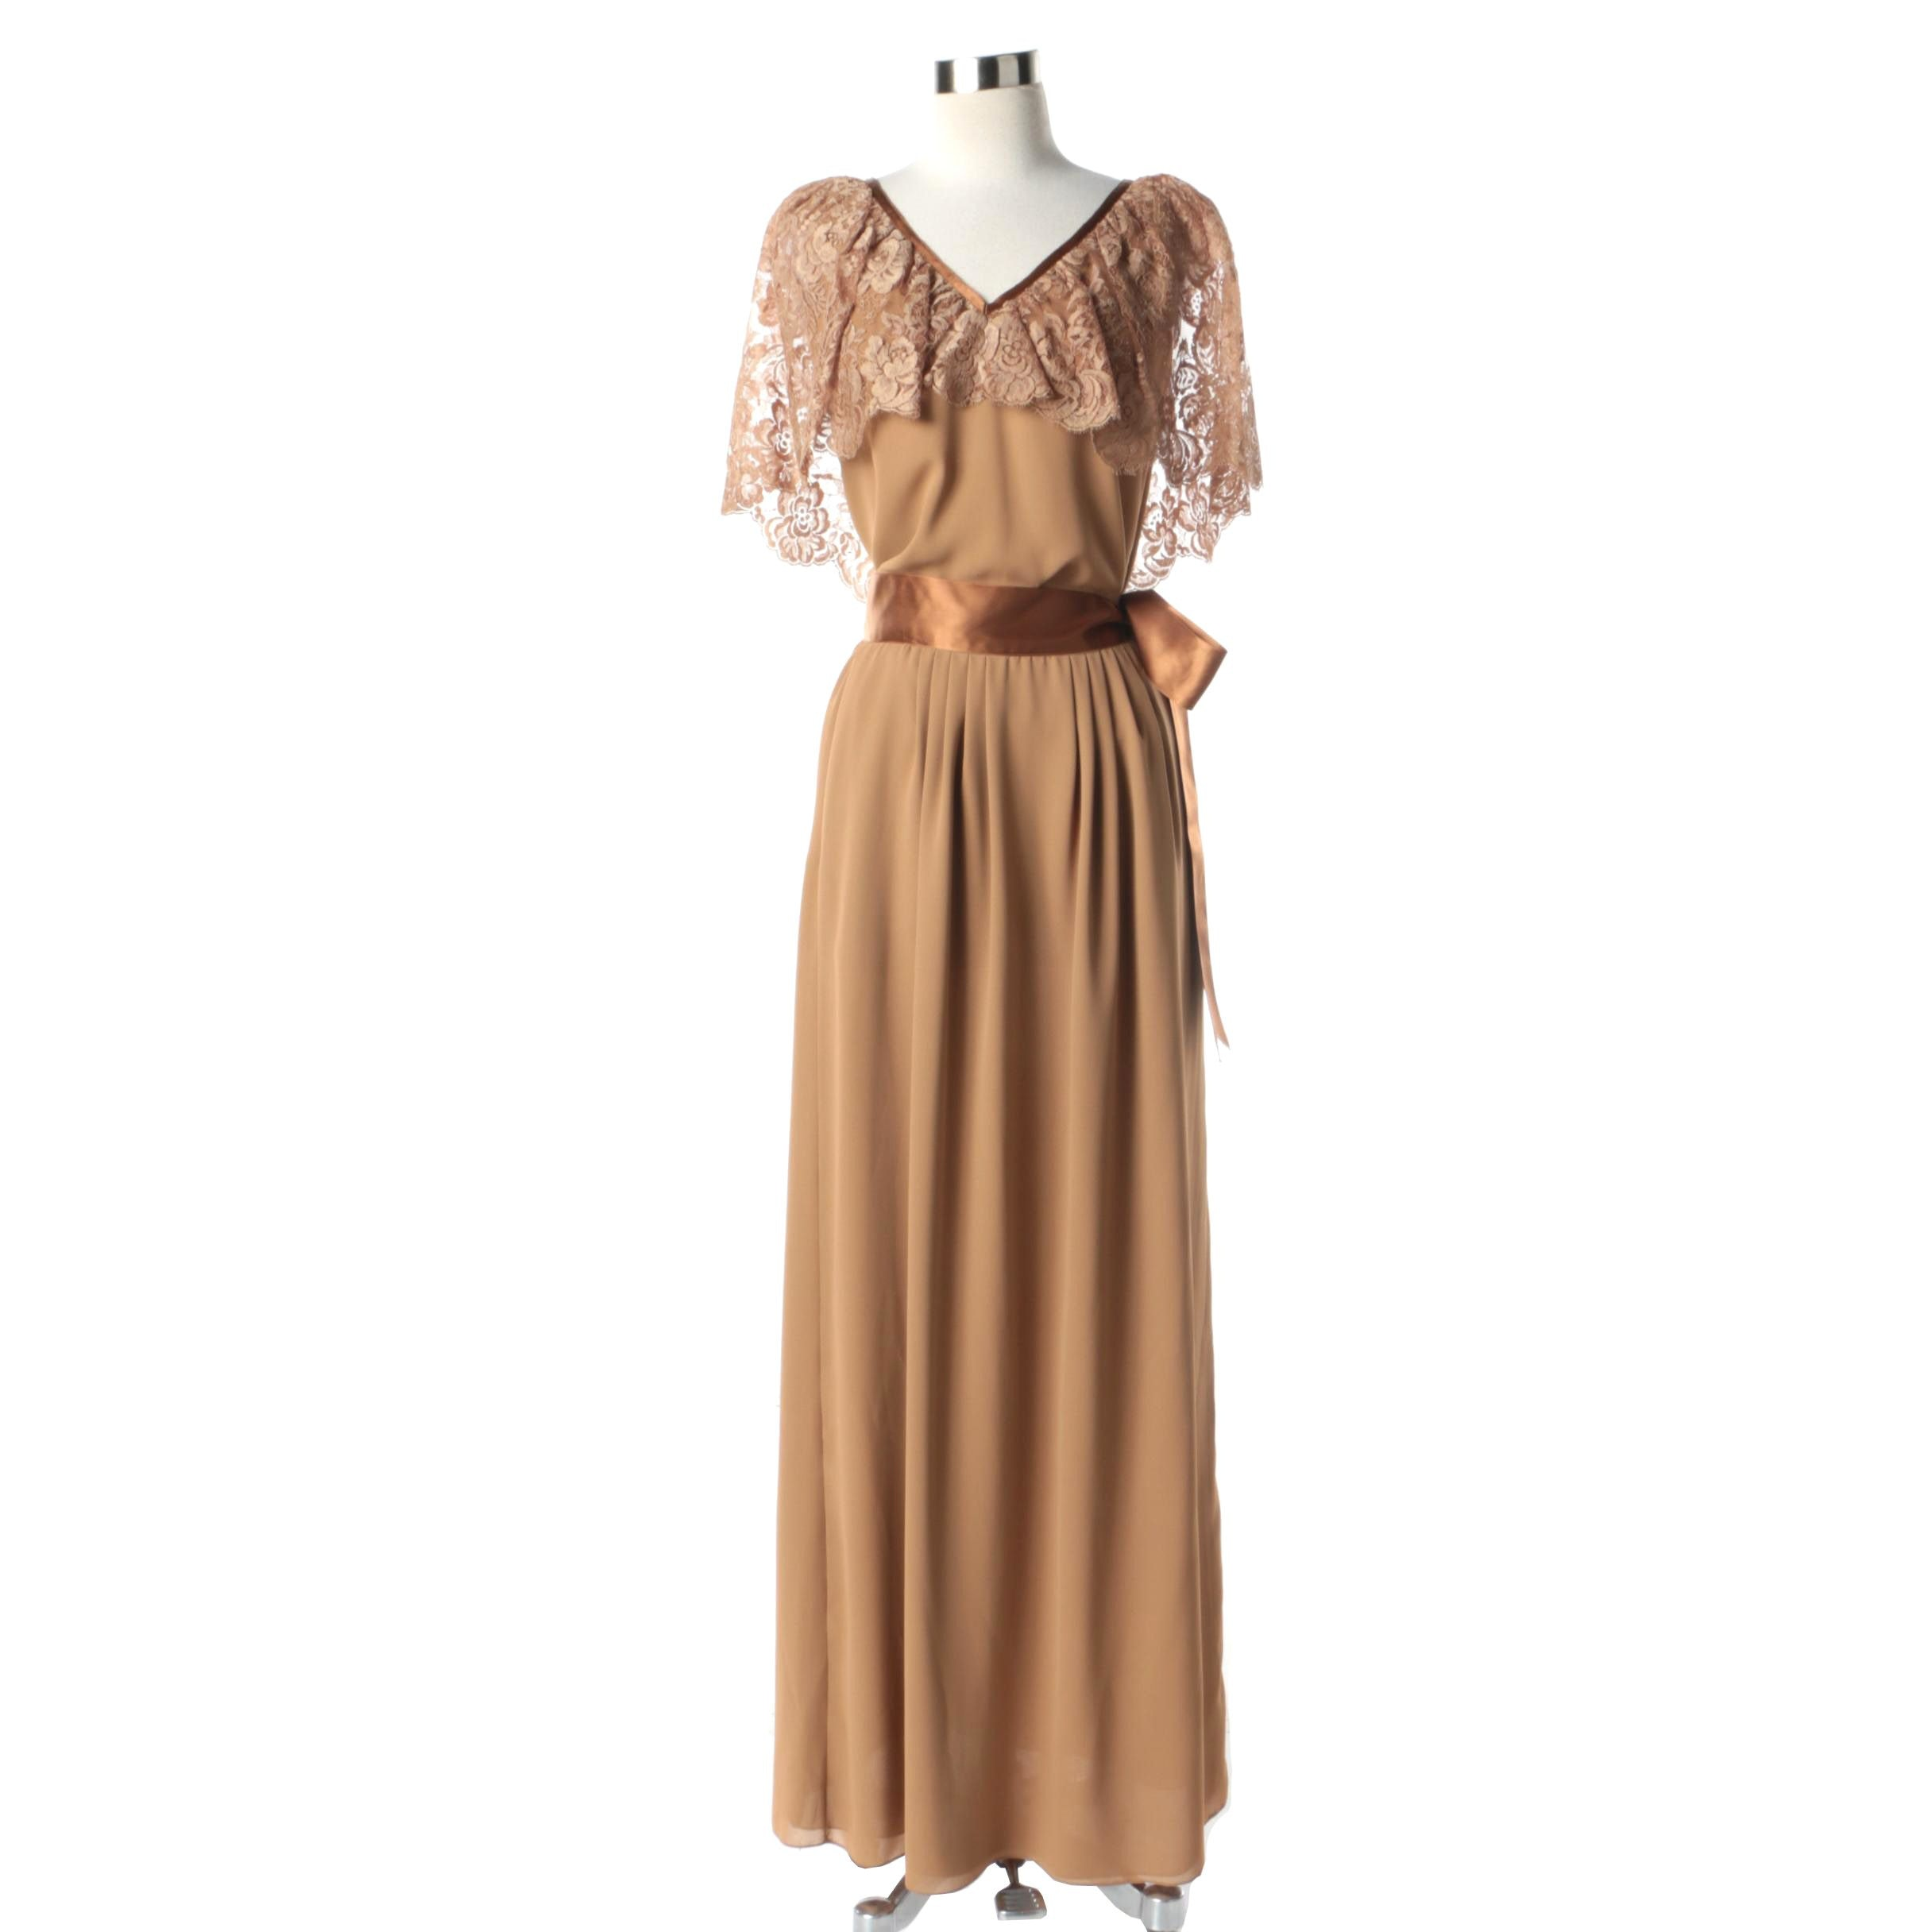 1980s Vintage Frank Tignino Caramel Silk and Lace Blouse and Maxi Skirt